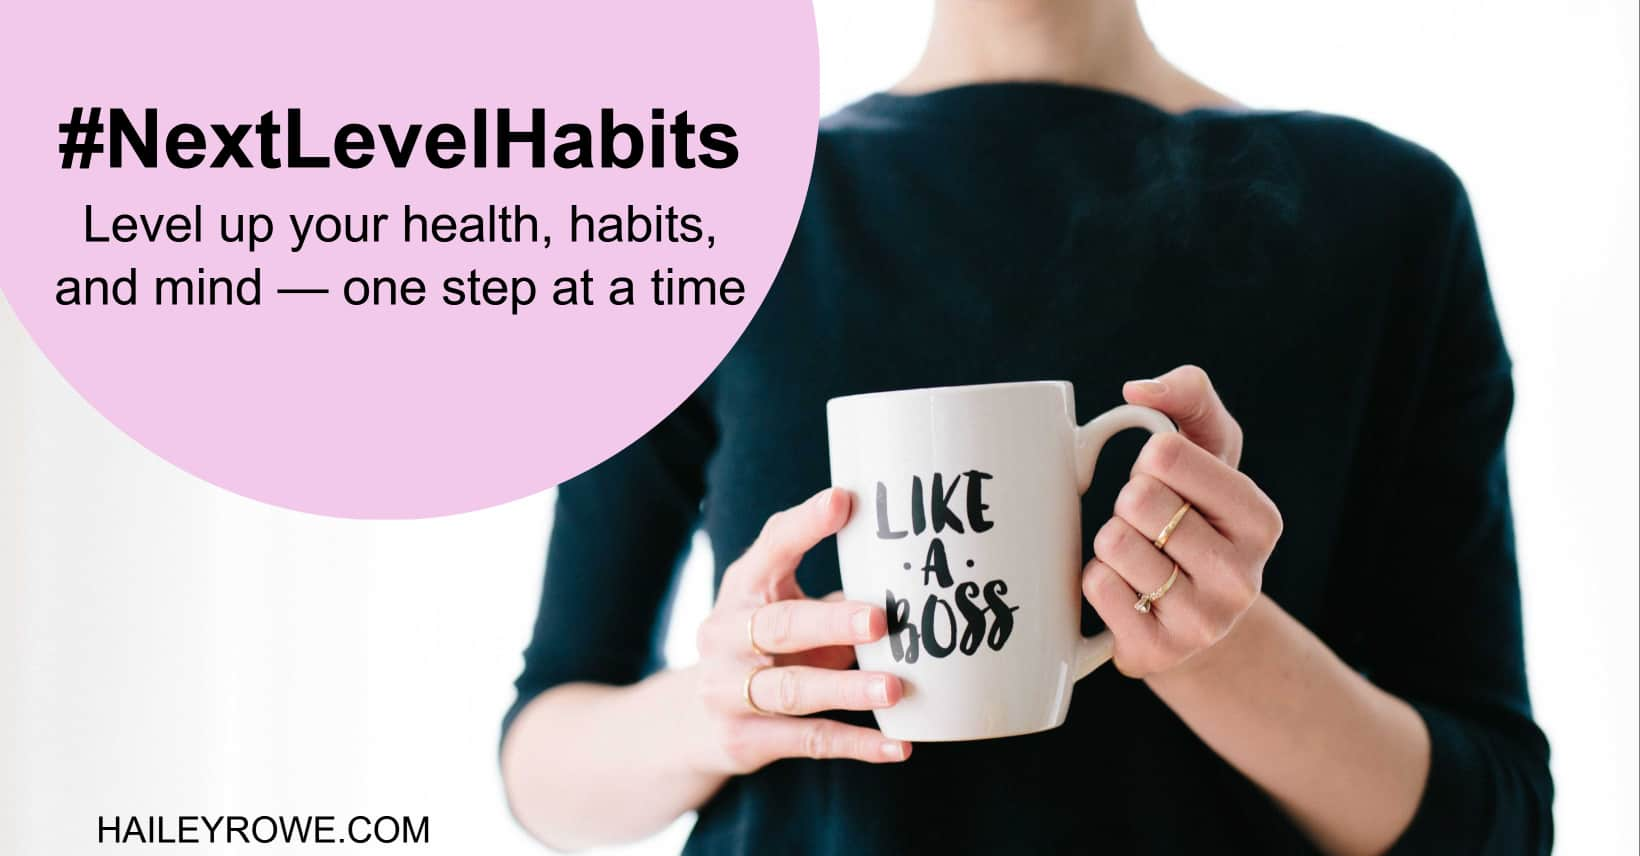 Next Level Habits FB Cover